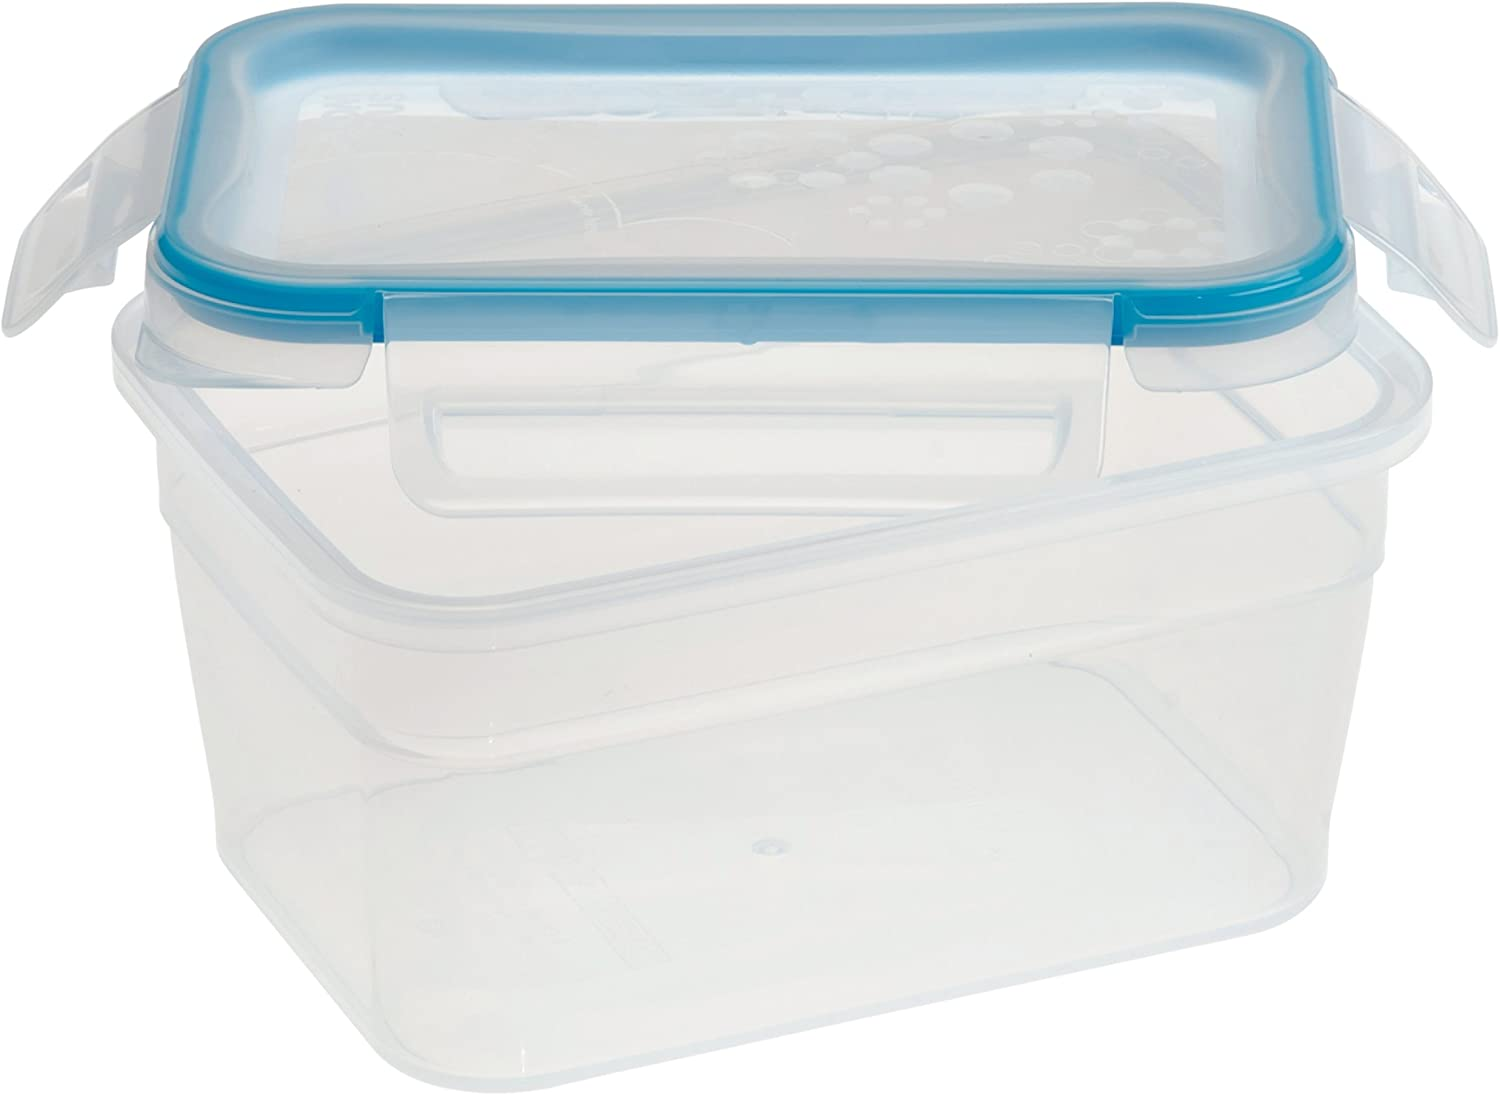 Snapware Total Solution Rectangular Plastic Food Storage Set (5-Cup, BPA Free, Meal Prep, Leak-Proof, Microwave, Freezer and Dishwasher Safe)